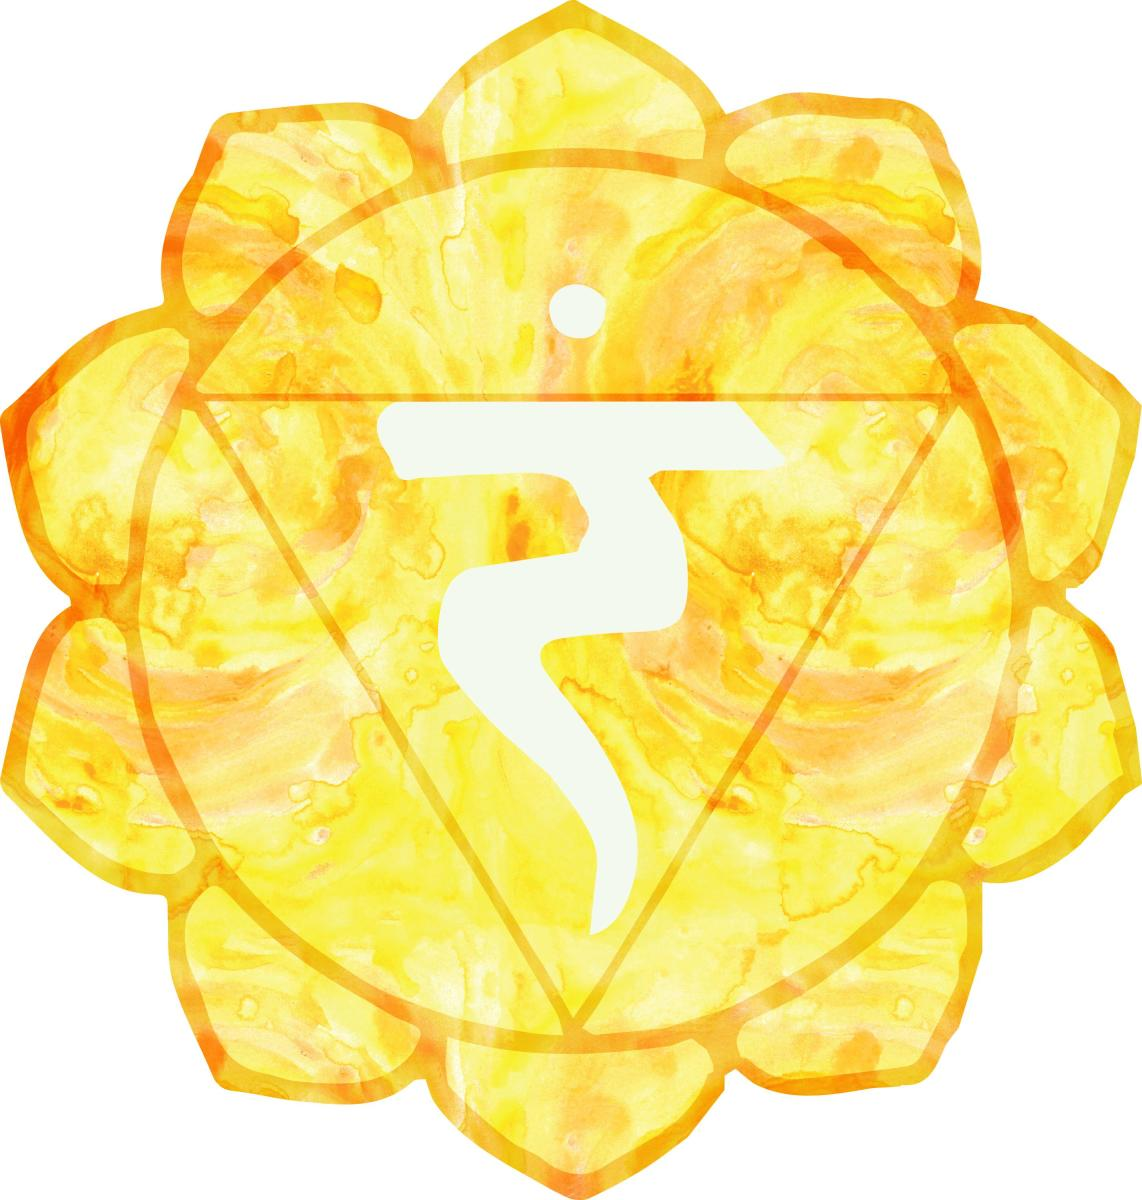 The third chakra or solar plexus chakra is located between the navel and the solar plexus, and it associated with the color yellow.